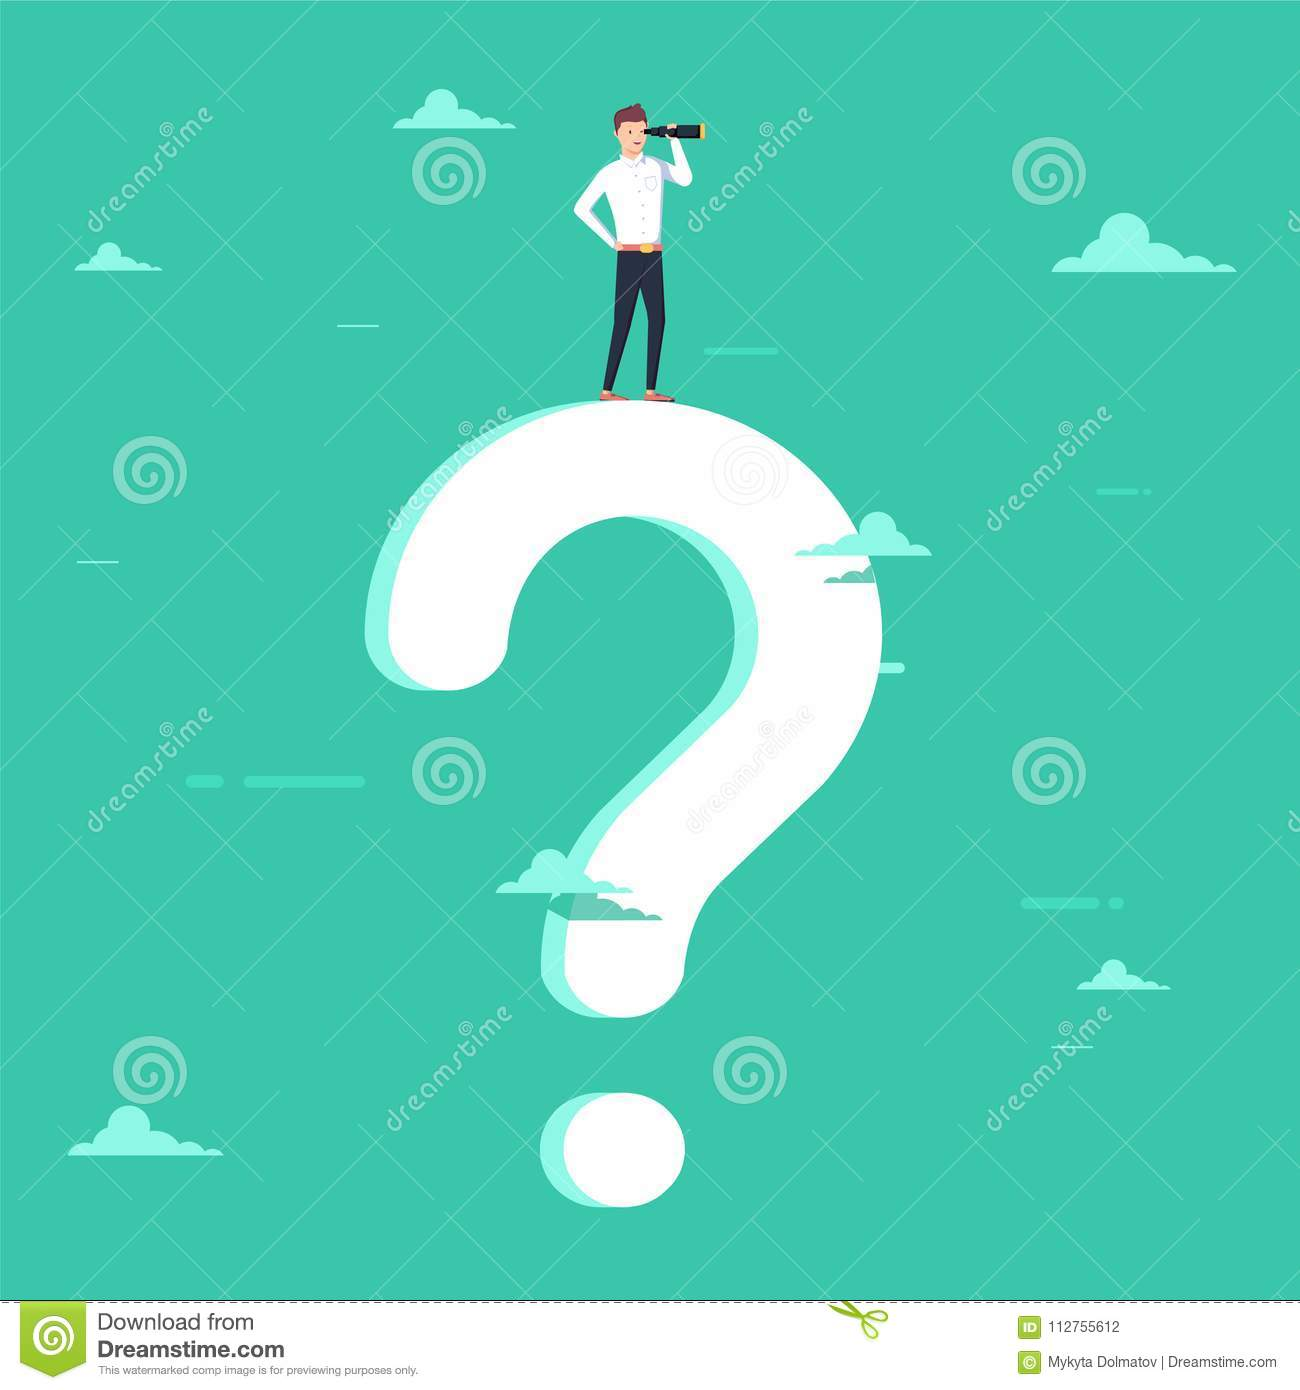 Business Decision Vector Concept With Businessman Visionary Standing